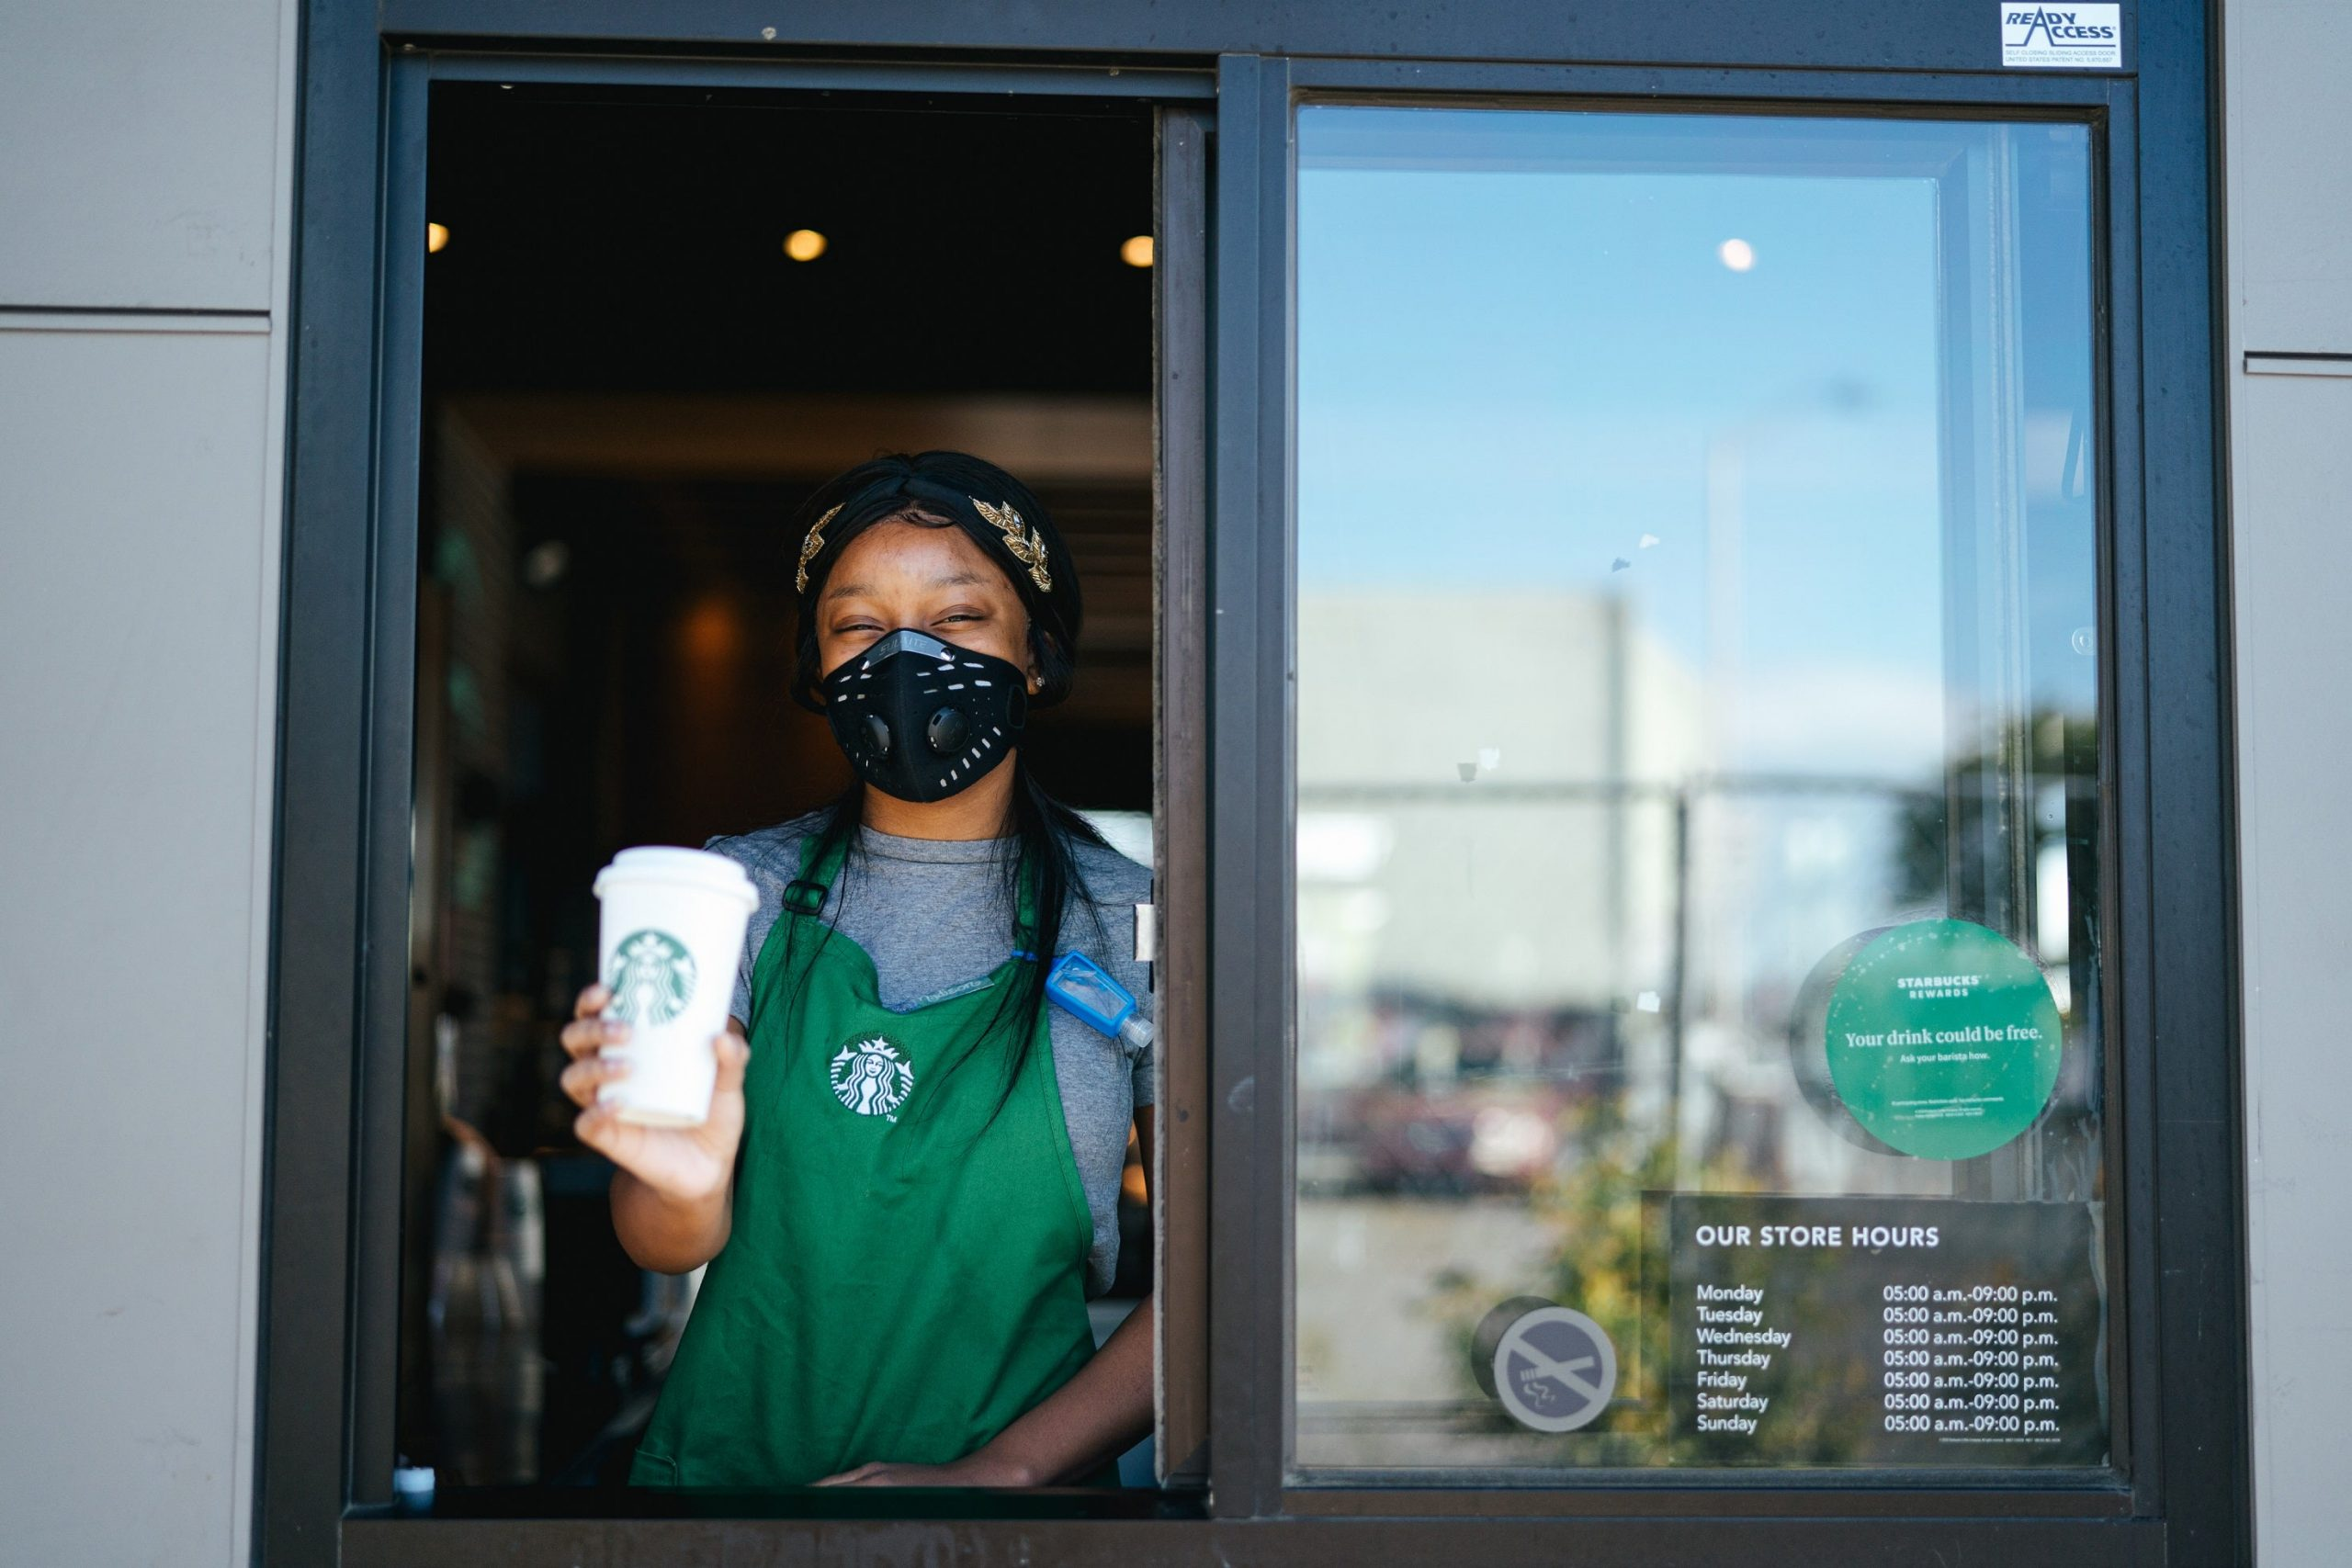 Starbucks Is Opening Stores Today @themotleyfool #stocks $sbux photo